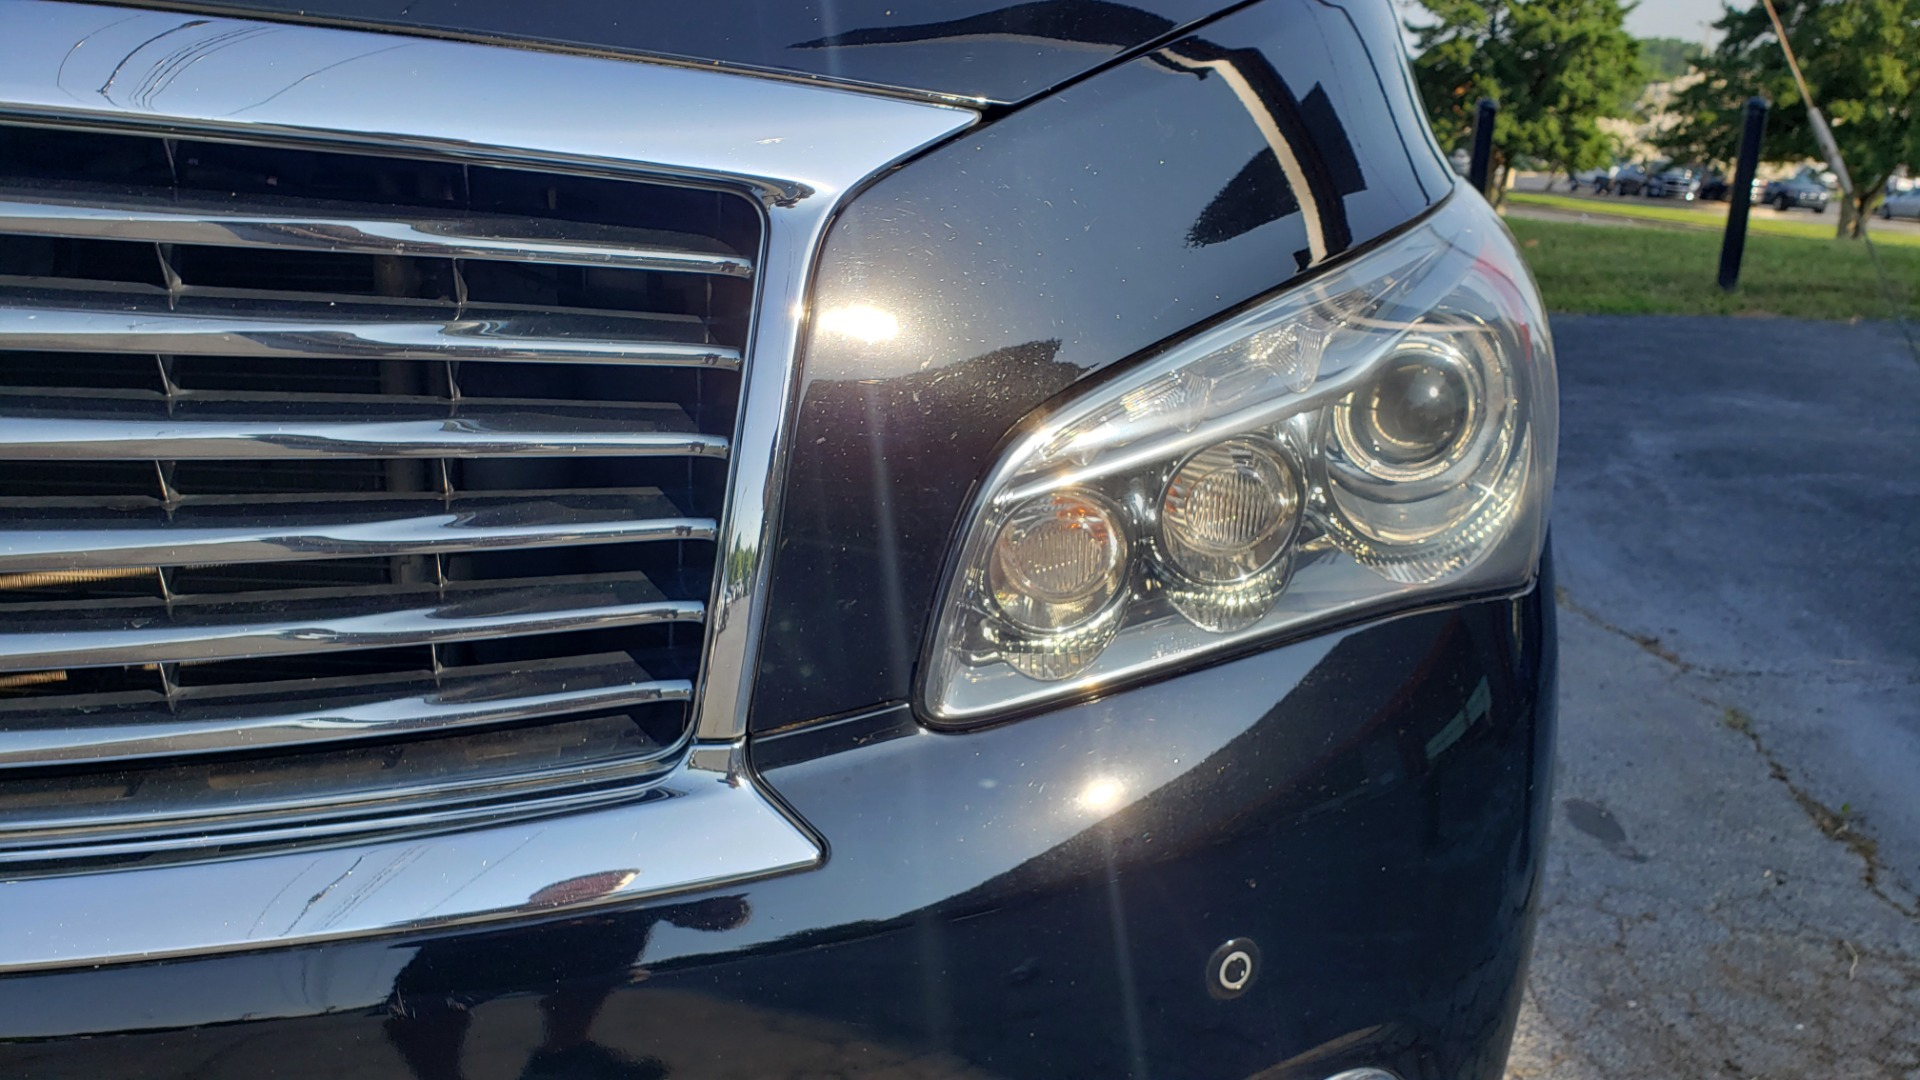 Used 2013 INFINITI QX56 NAV / SUNROOF / BOSE / THEATER / 3-ROW / REARVIEW for sale $21,495 at Formula Imports in Charlotte NC 28227 11